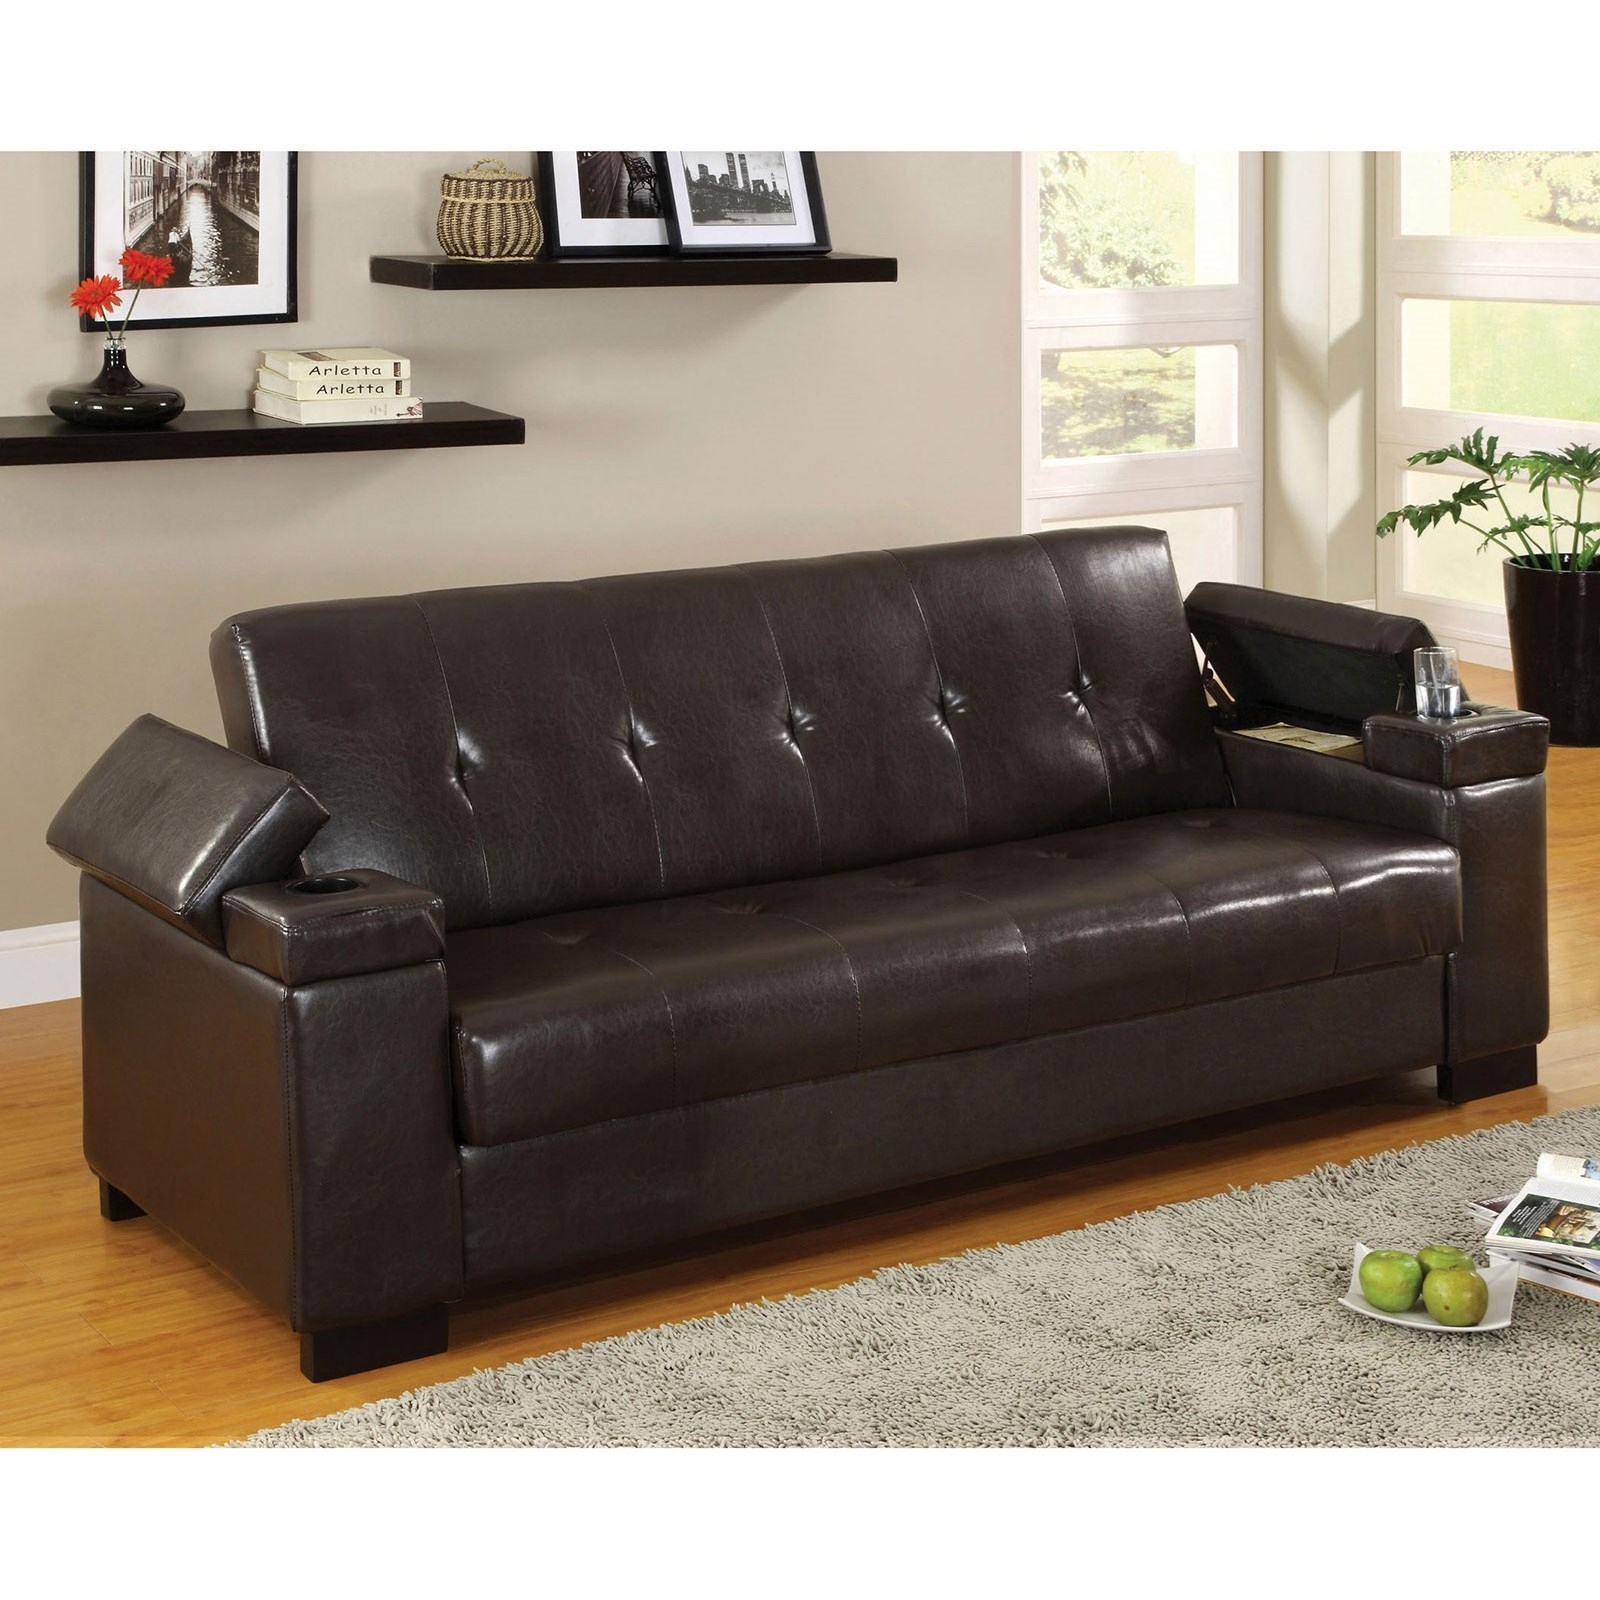 Logan Leatherette Futon Sofa With Storage By Furniture Of America At Rooms For Less